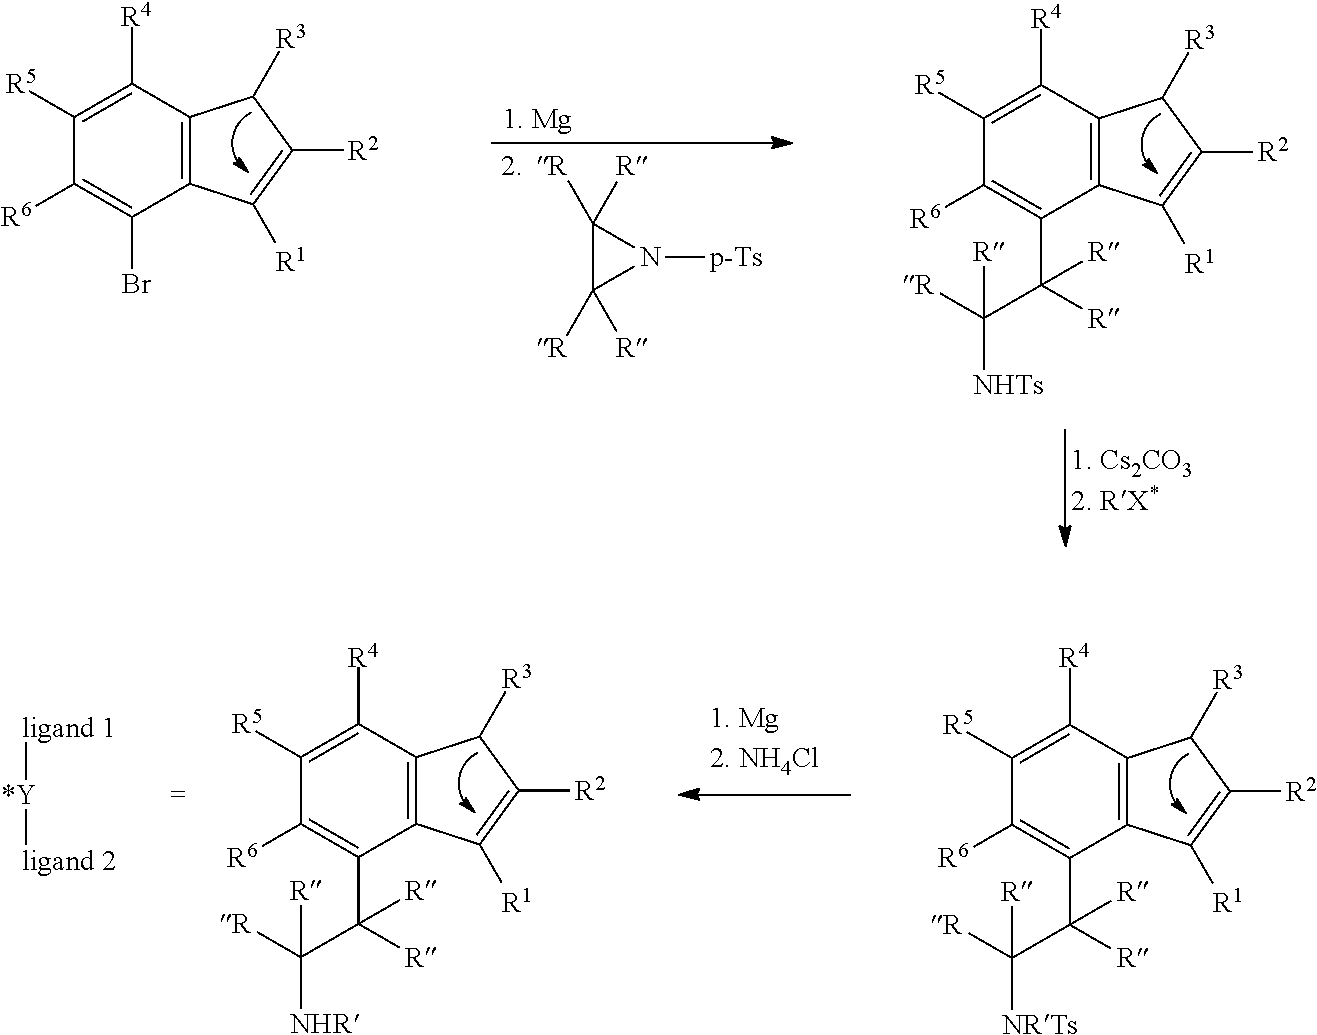 Us8058461b2 Mono Indenyl Transition Metal Compounds And Sisir Set Ts 222 Figure Us08058461 20111115 C00007